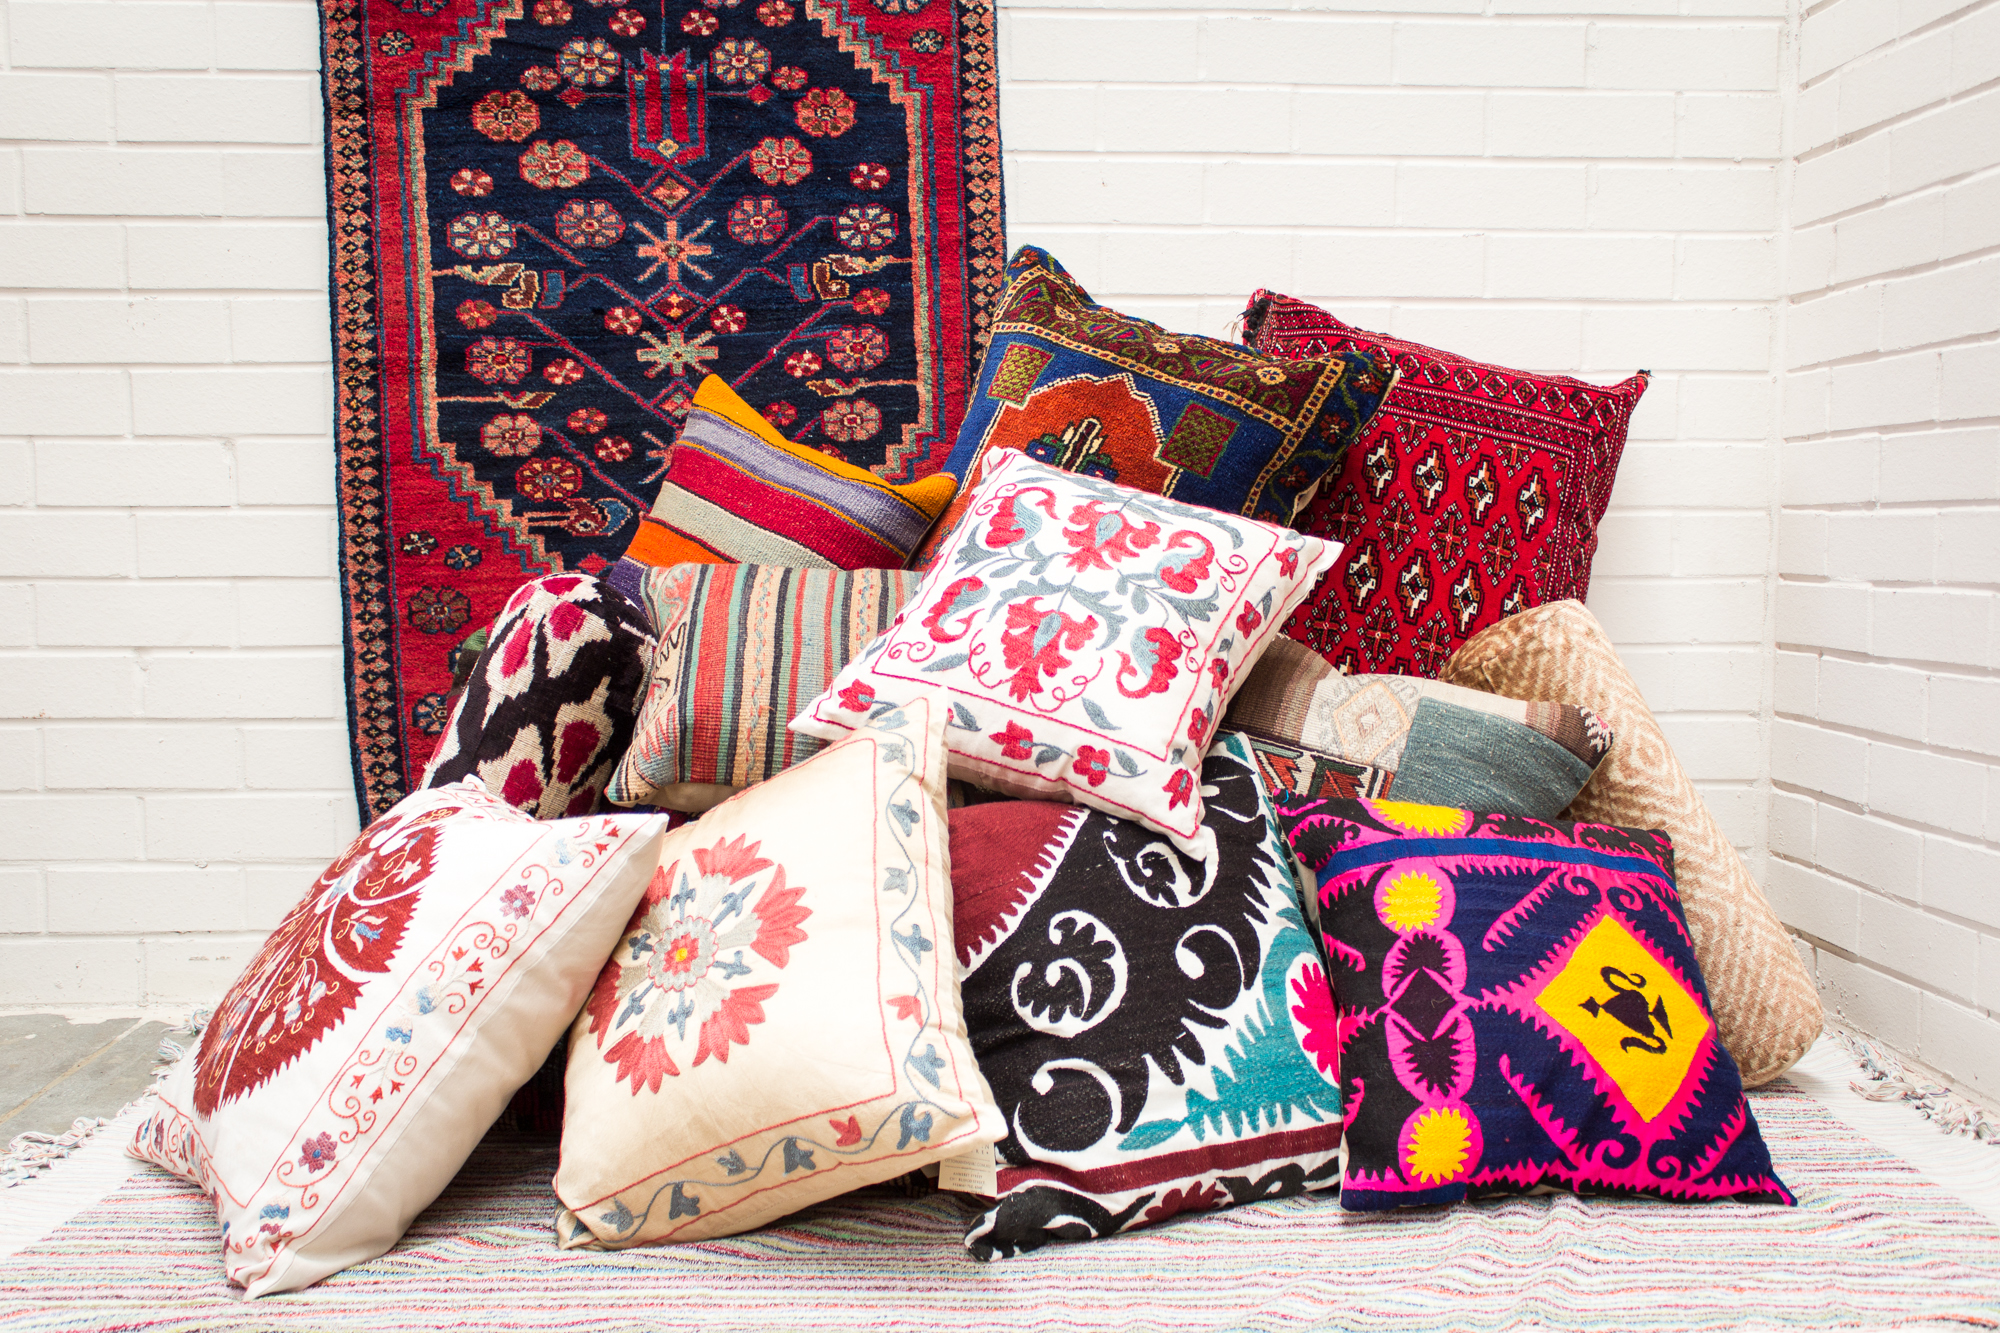 An assortion of Cushion, rug fragments, kilims and susani cushions with a turkish rug in the background